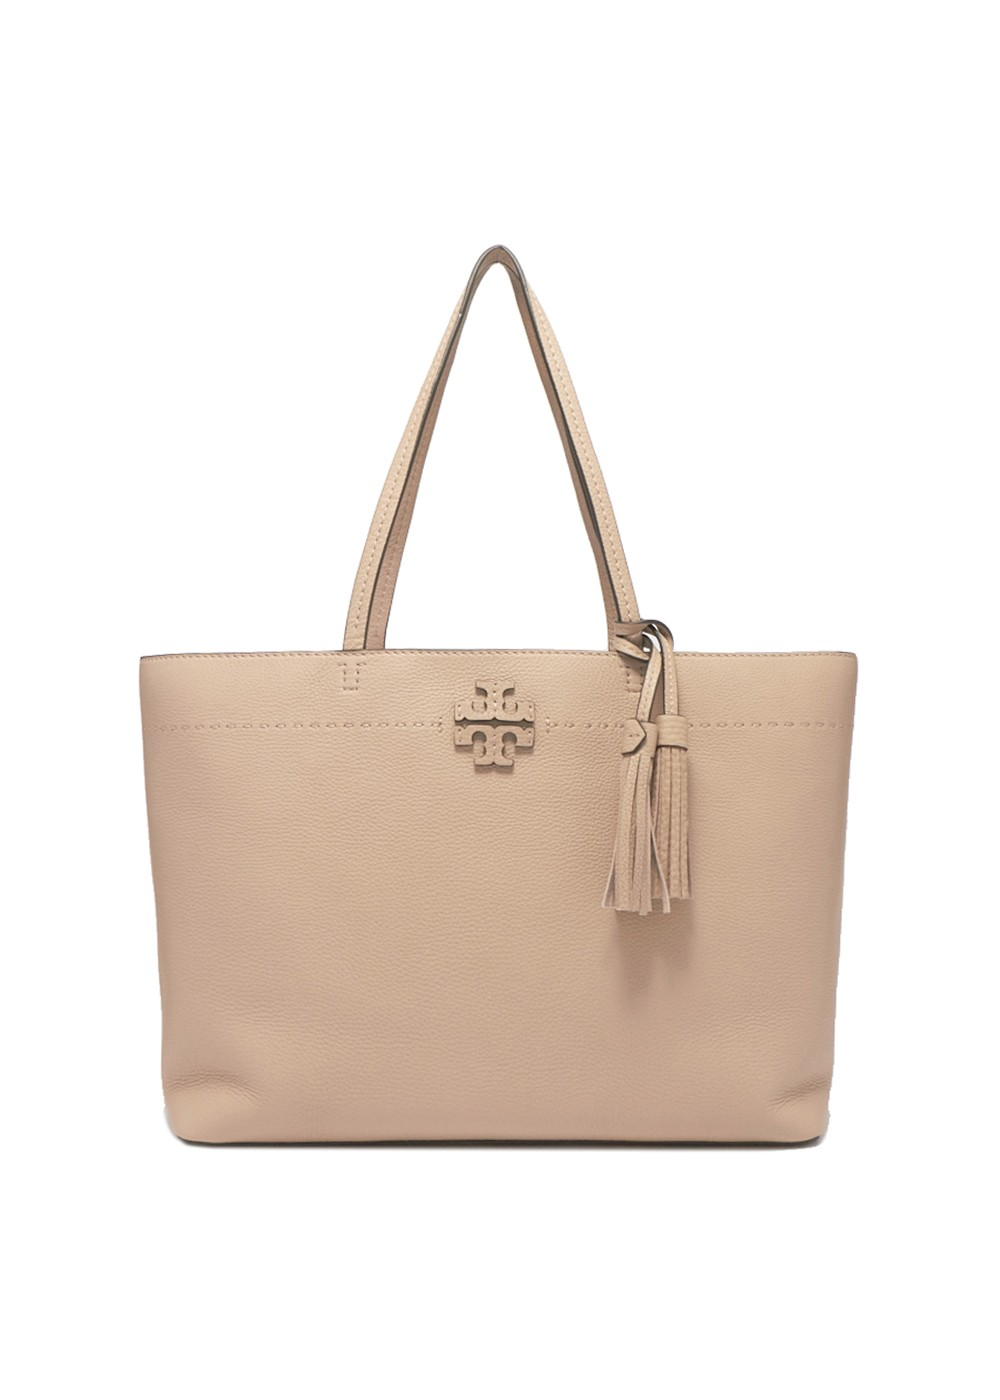 【最大47%OFF】MCGRAW TOTE|DEVON SAND|トートバッグ|Tory Burch